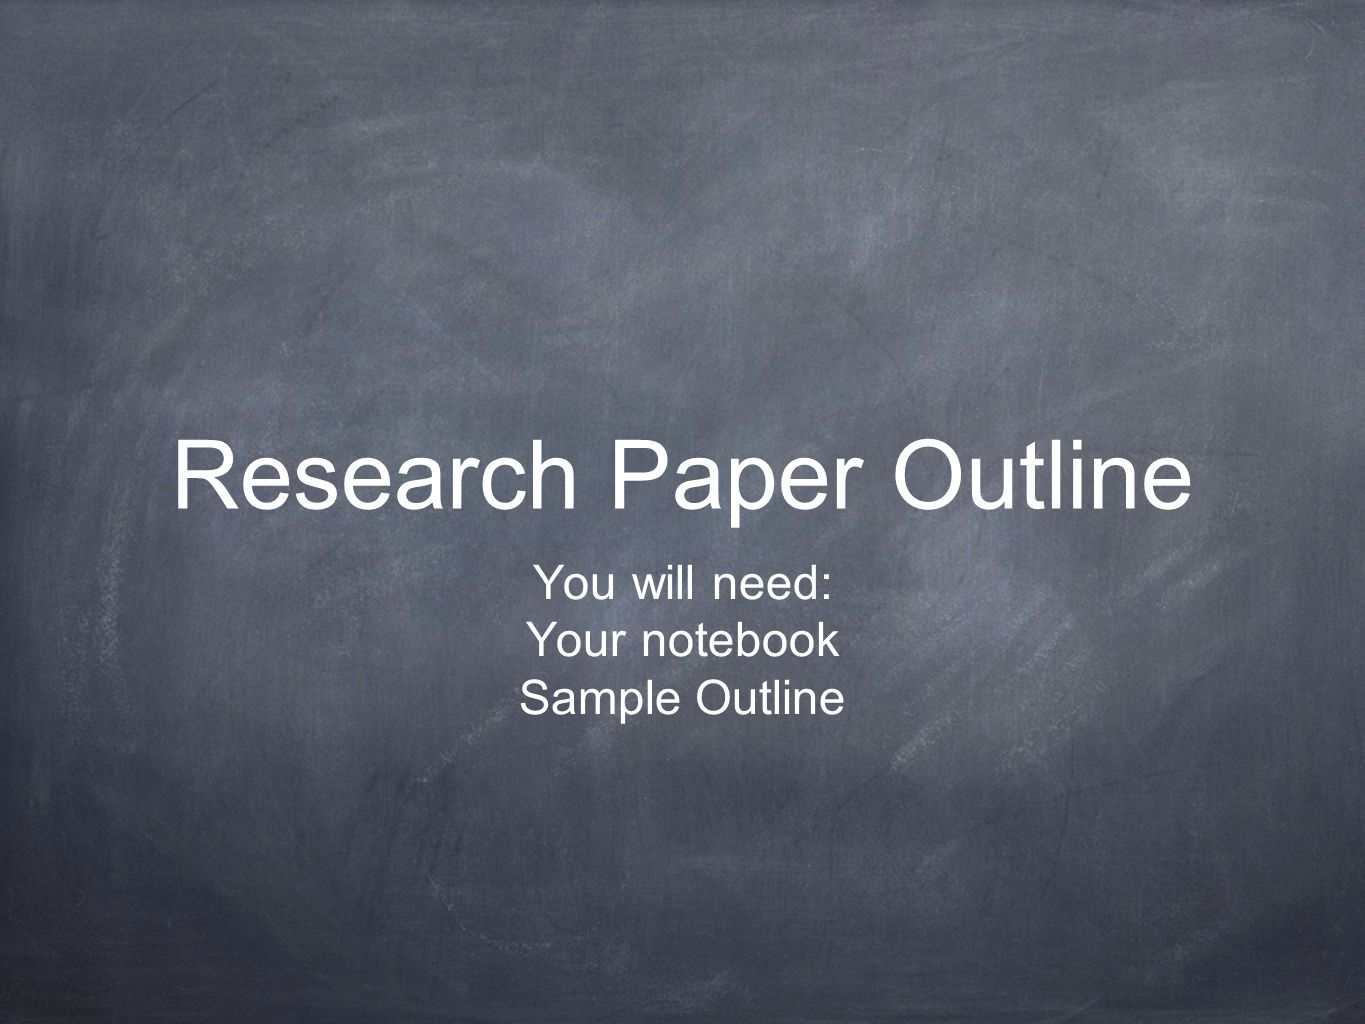 011 Outline For Research Paper Powerpoint Slide 1 Awesome Creating An A Full